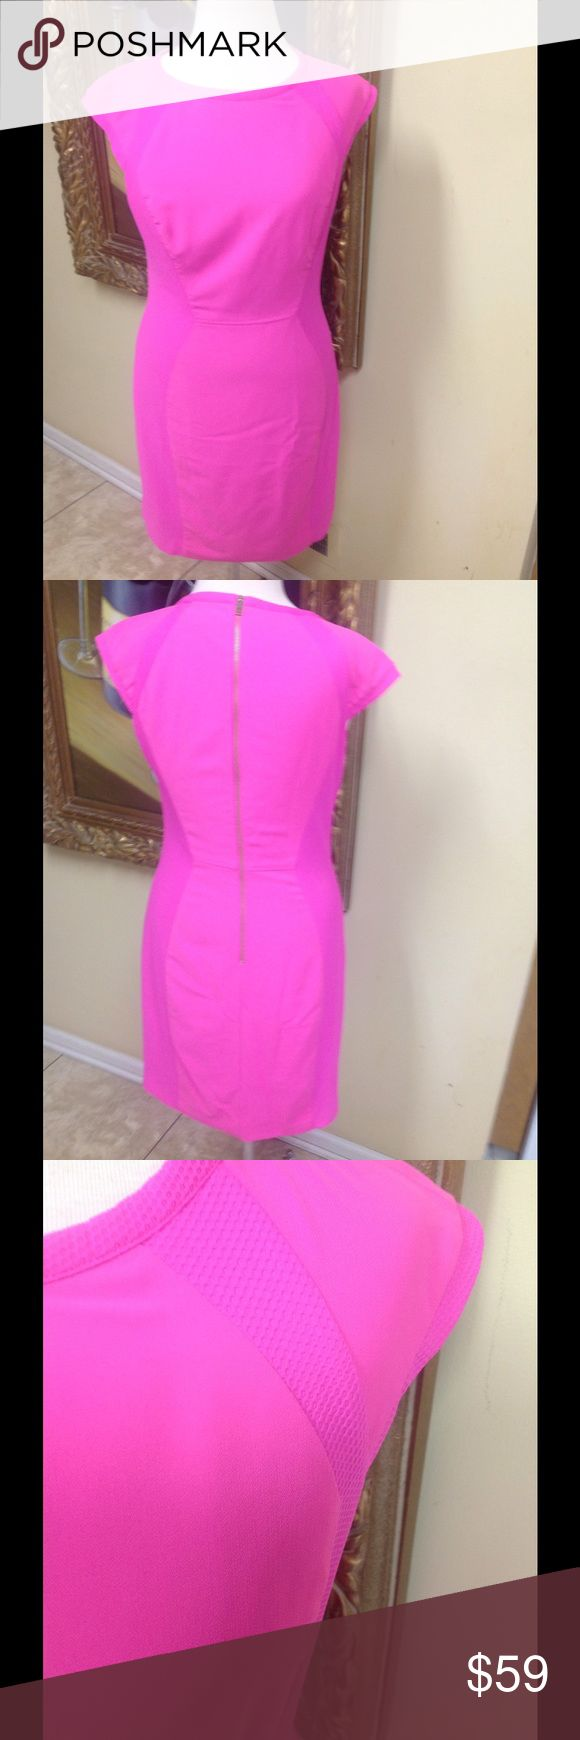 Ted Baker Pink Dress Size 4 Stunning Ted Baker Dress size 4. Gorgeous bright pink color, zipper back, beautiful fabric with silk lining, minor wear with a tiny spot not noticeable, classic style, low price. Ted Baker London Dresses Midi